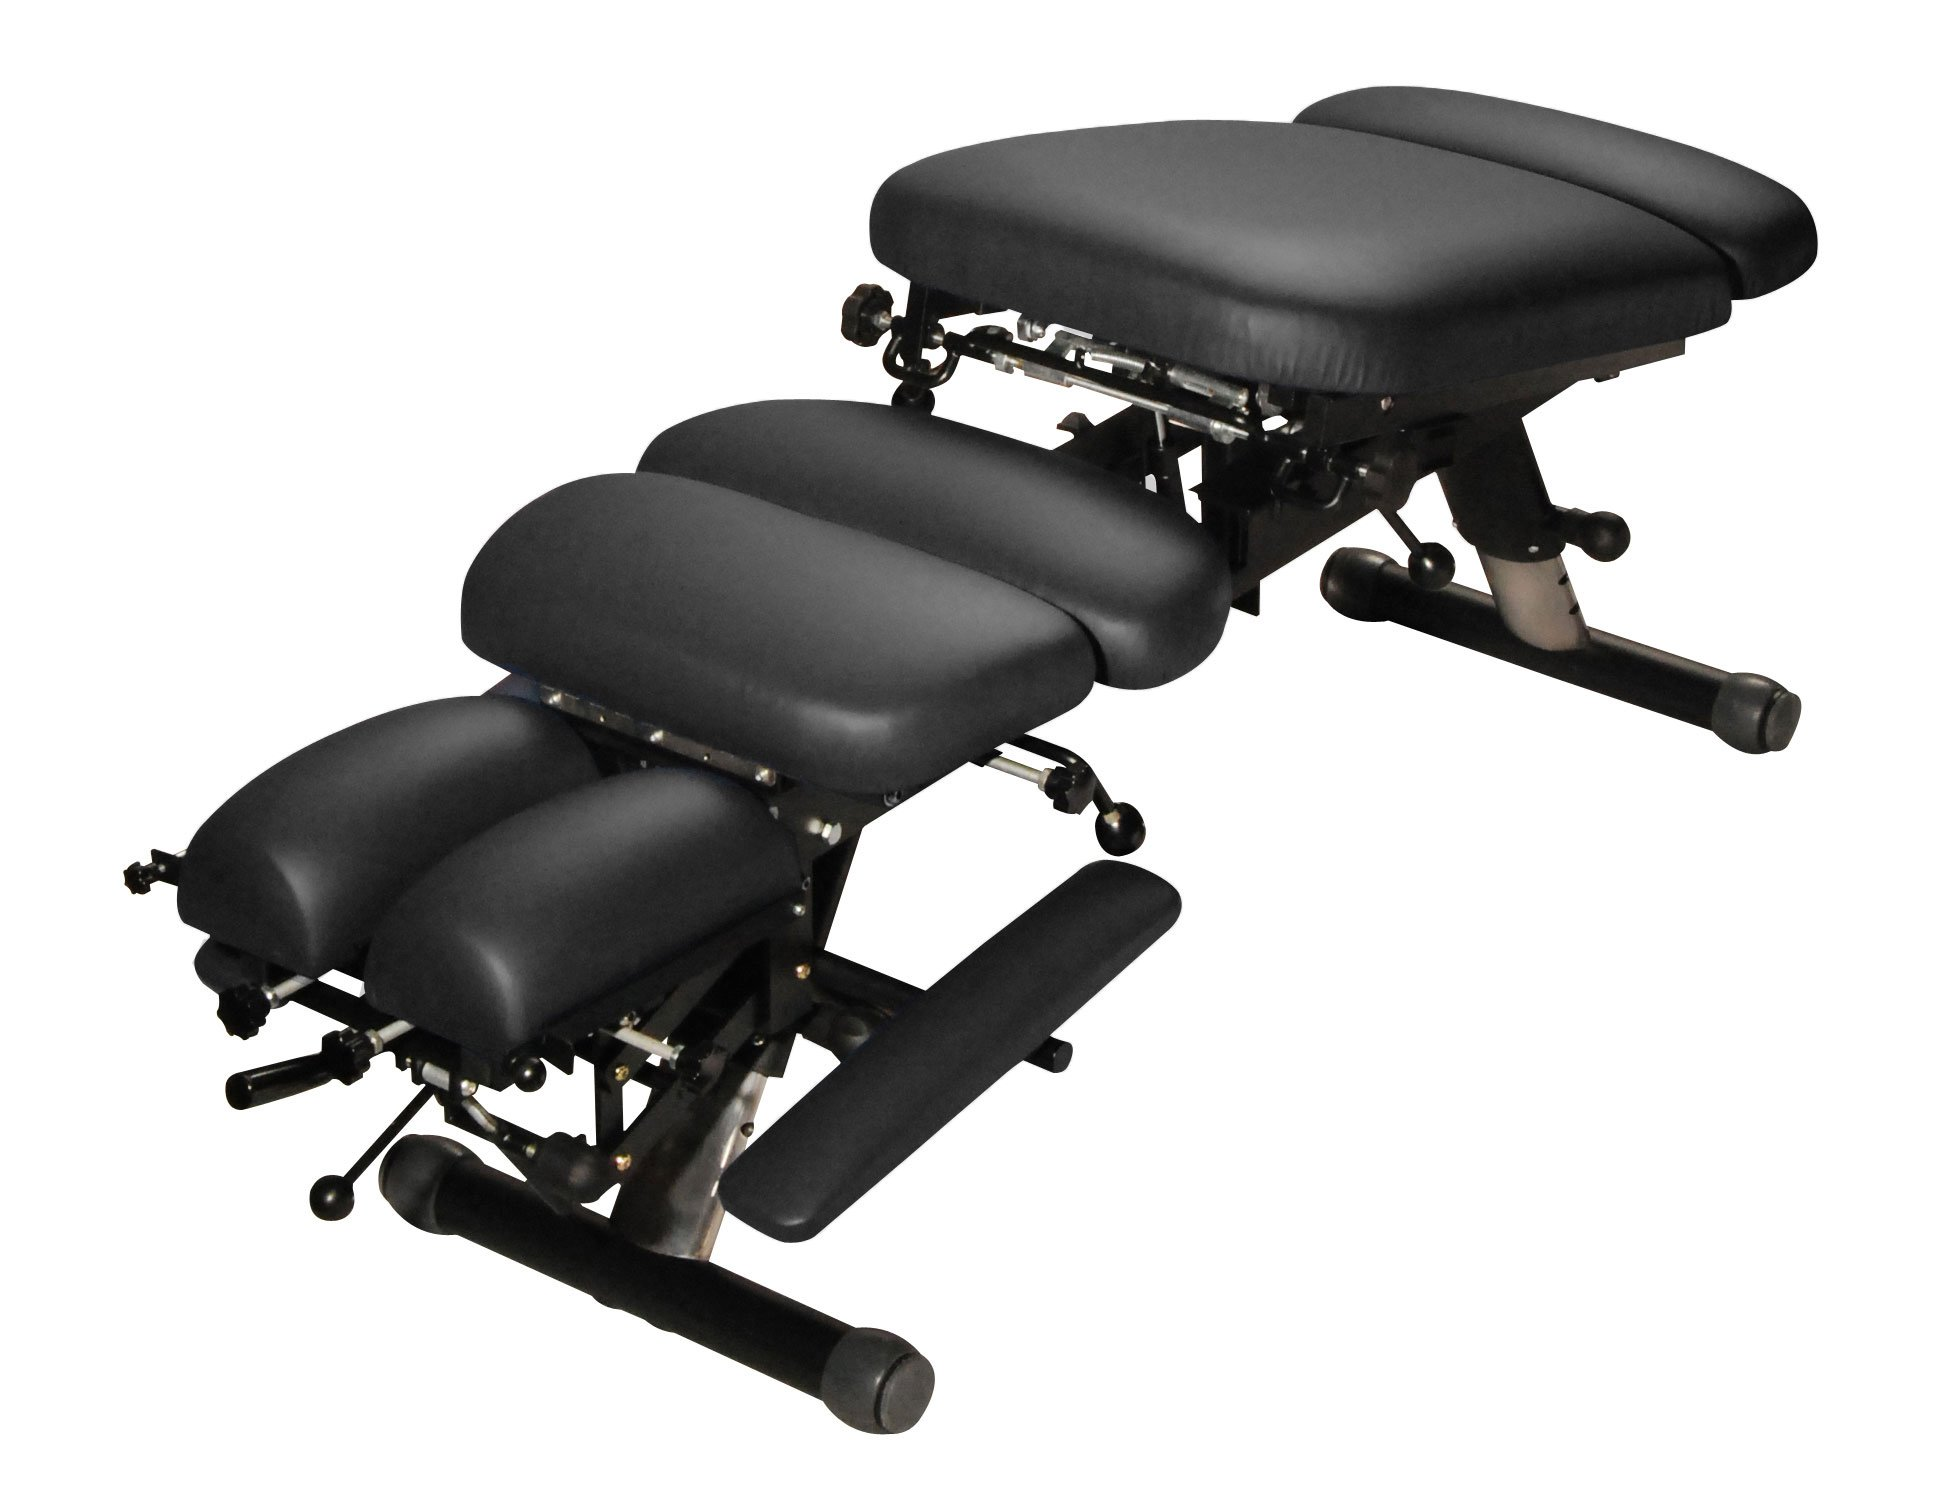 Iron Club 280 Stationary Chiropractic Table Therapy Massage Table